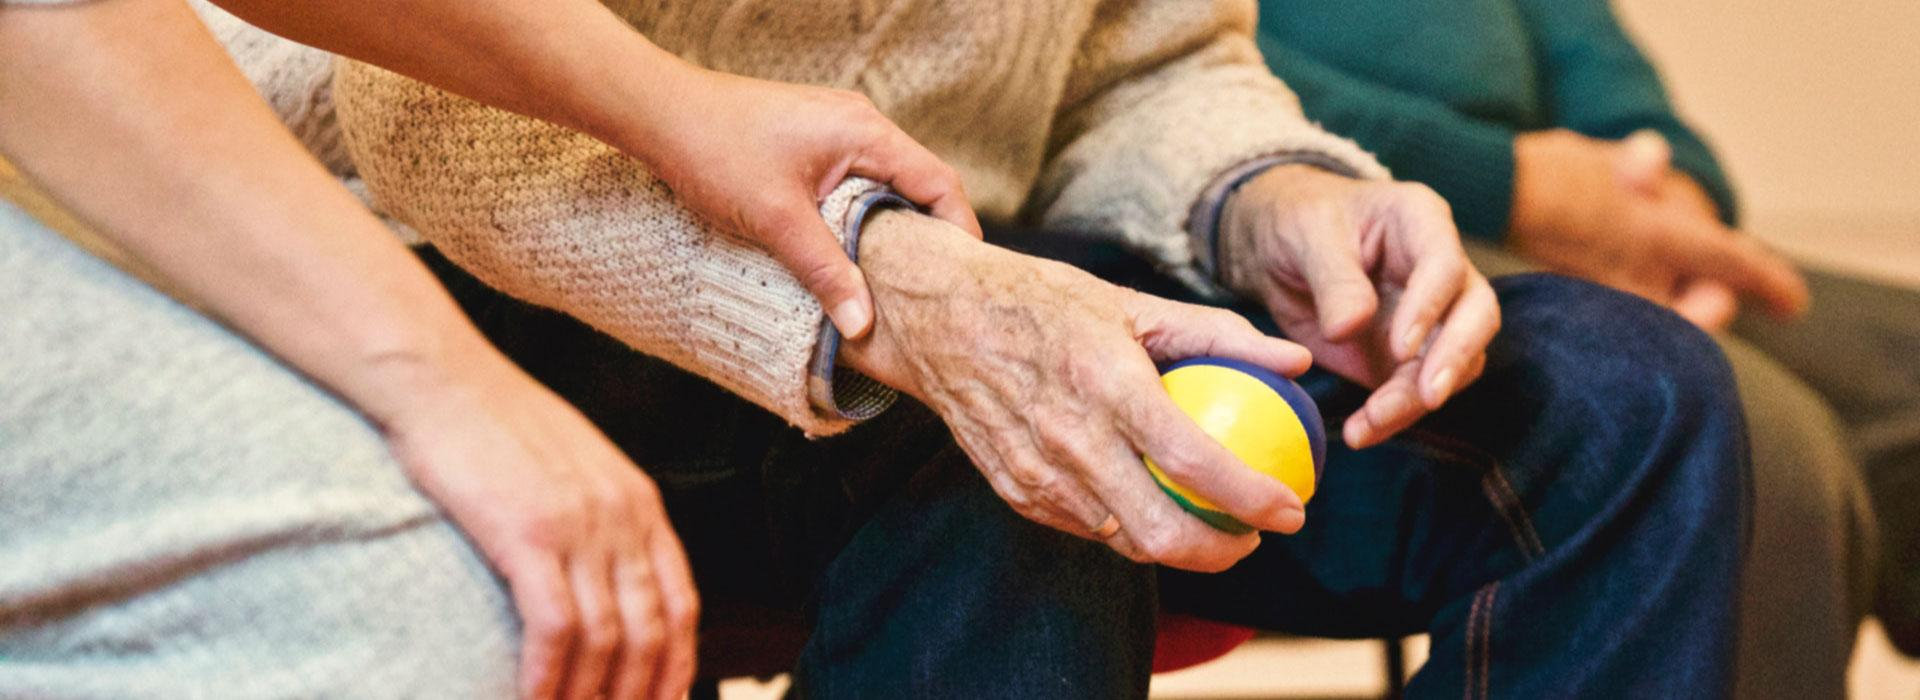 Senior man in the Southwest needs local care and support